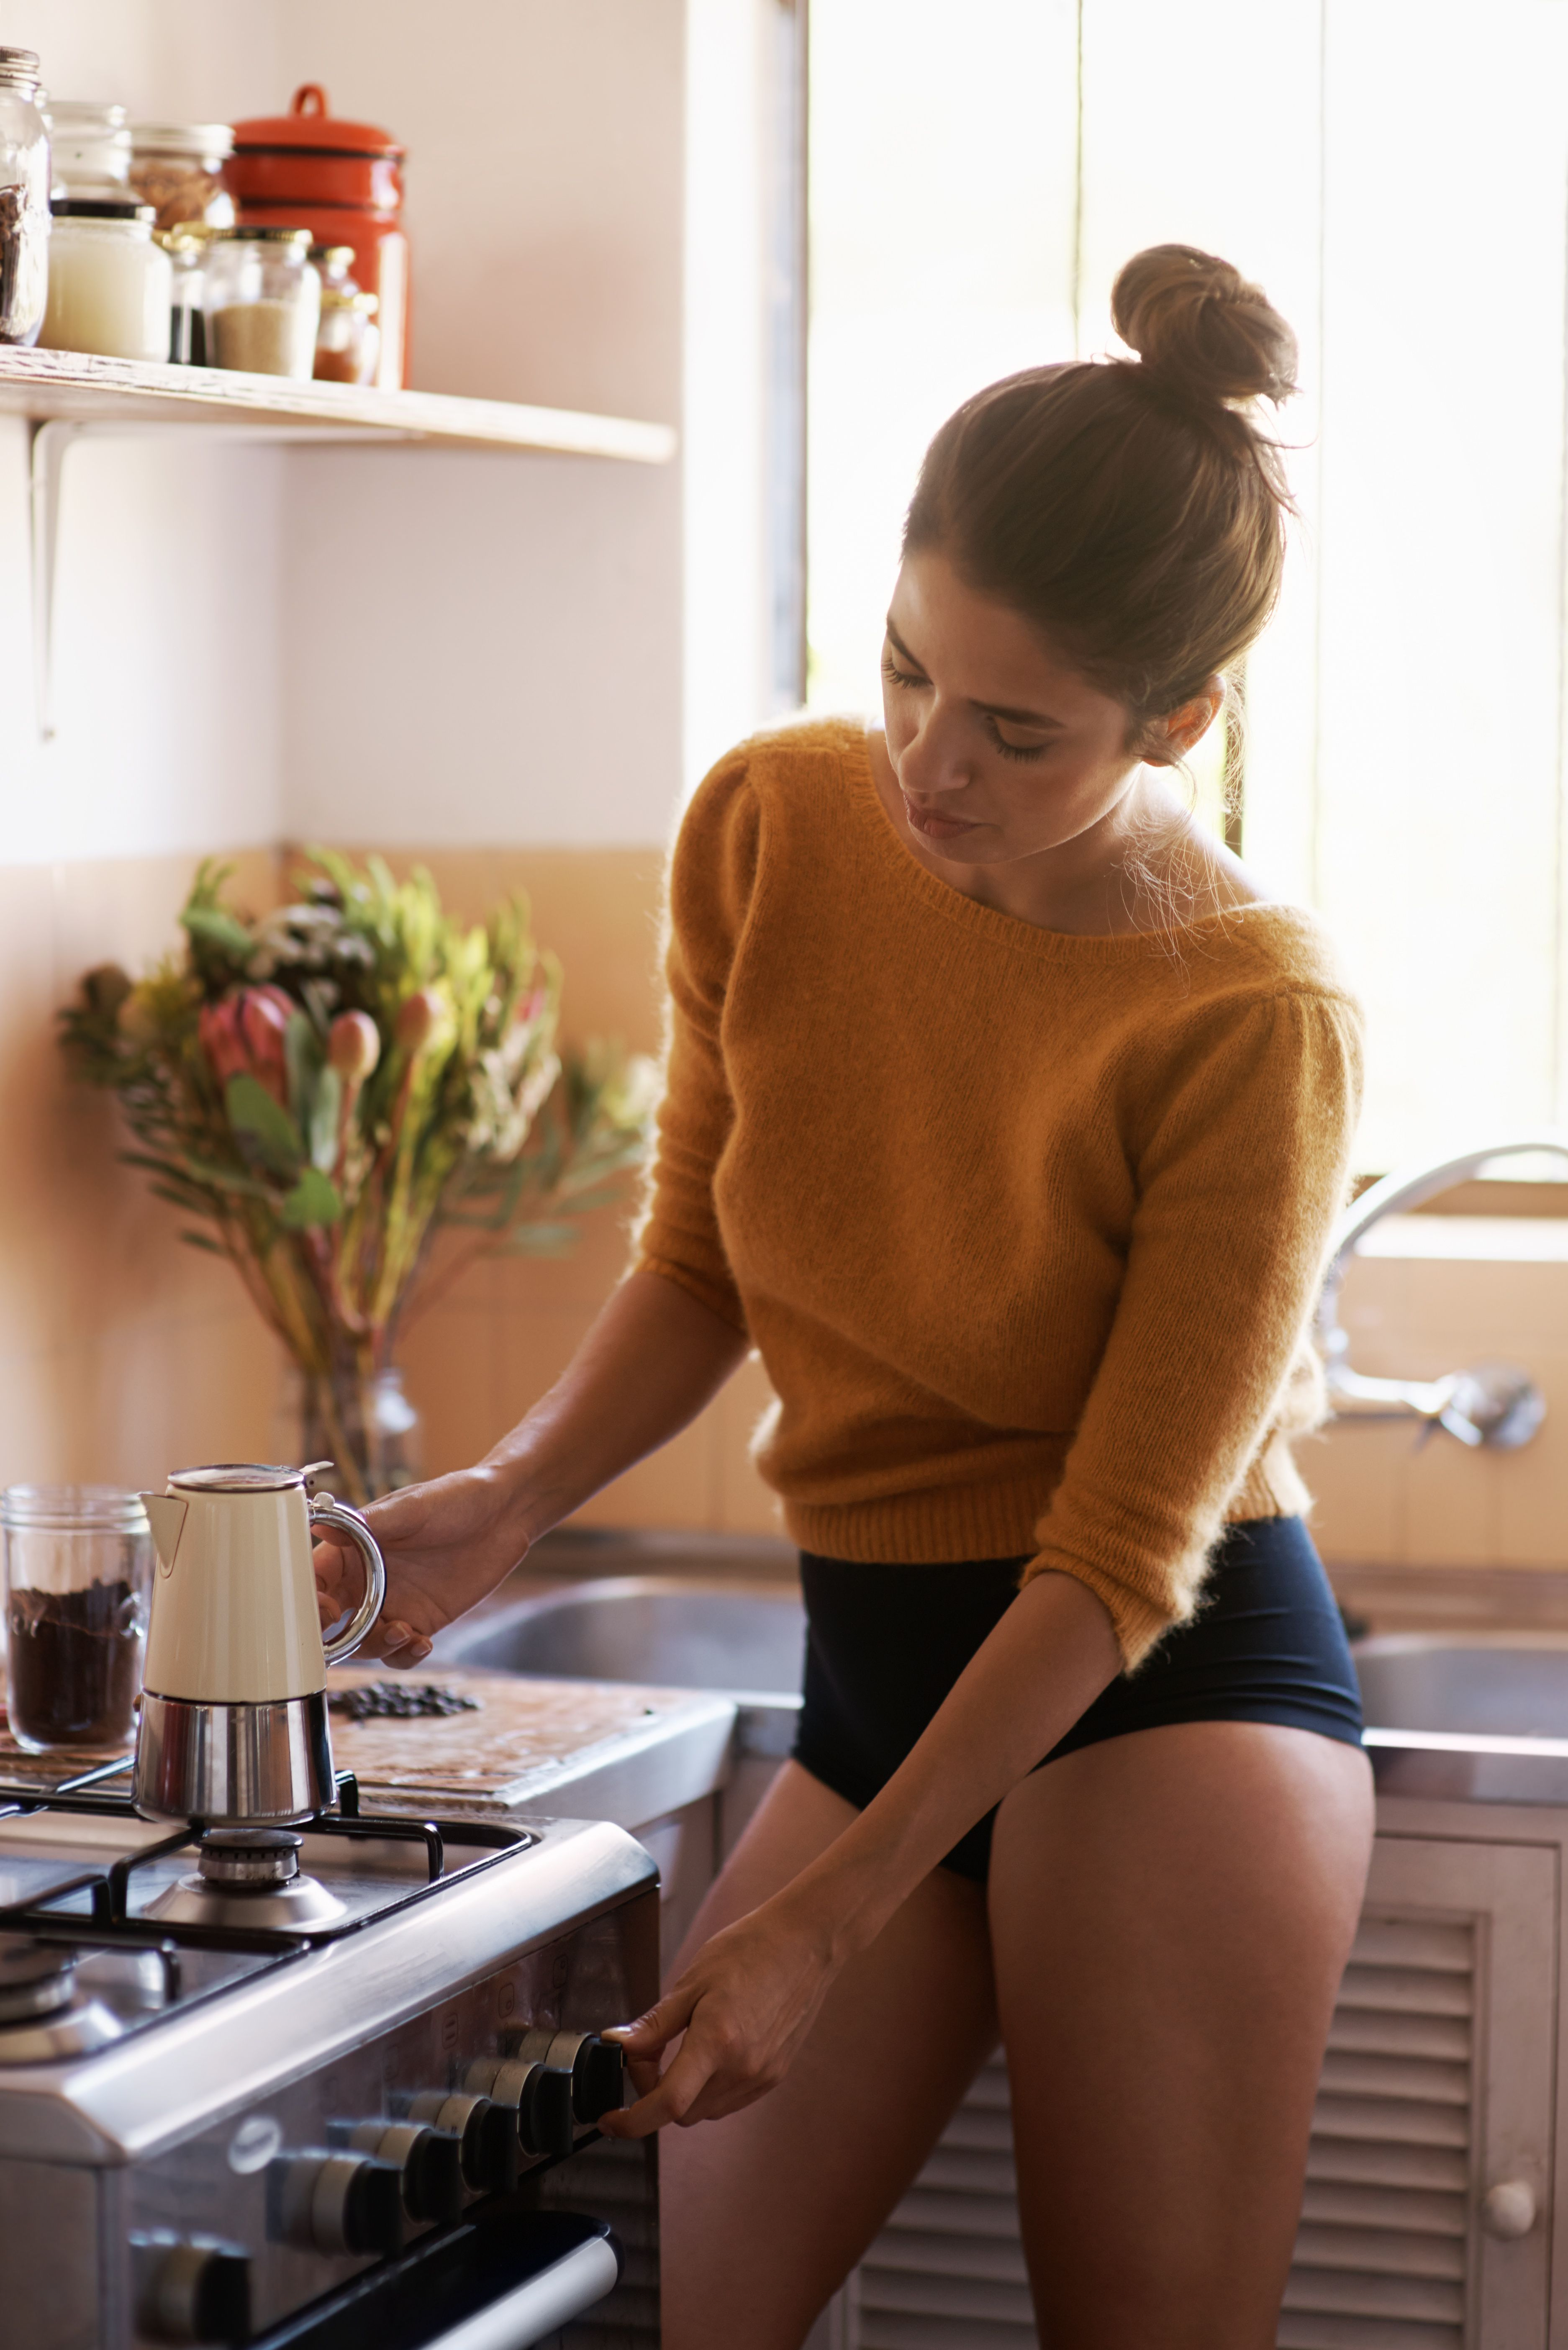 The Unpleasant Vagina Issue Women are Reporting From Trying the Latest Diet Trend